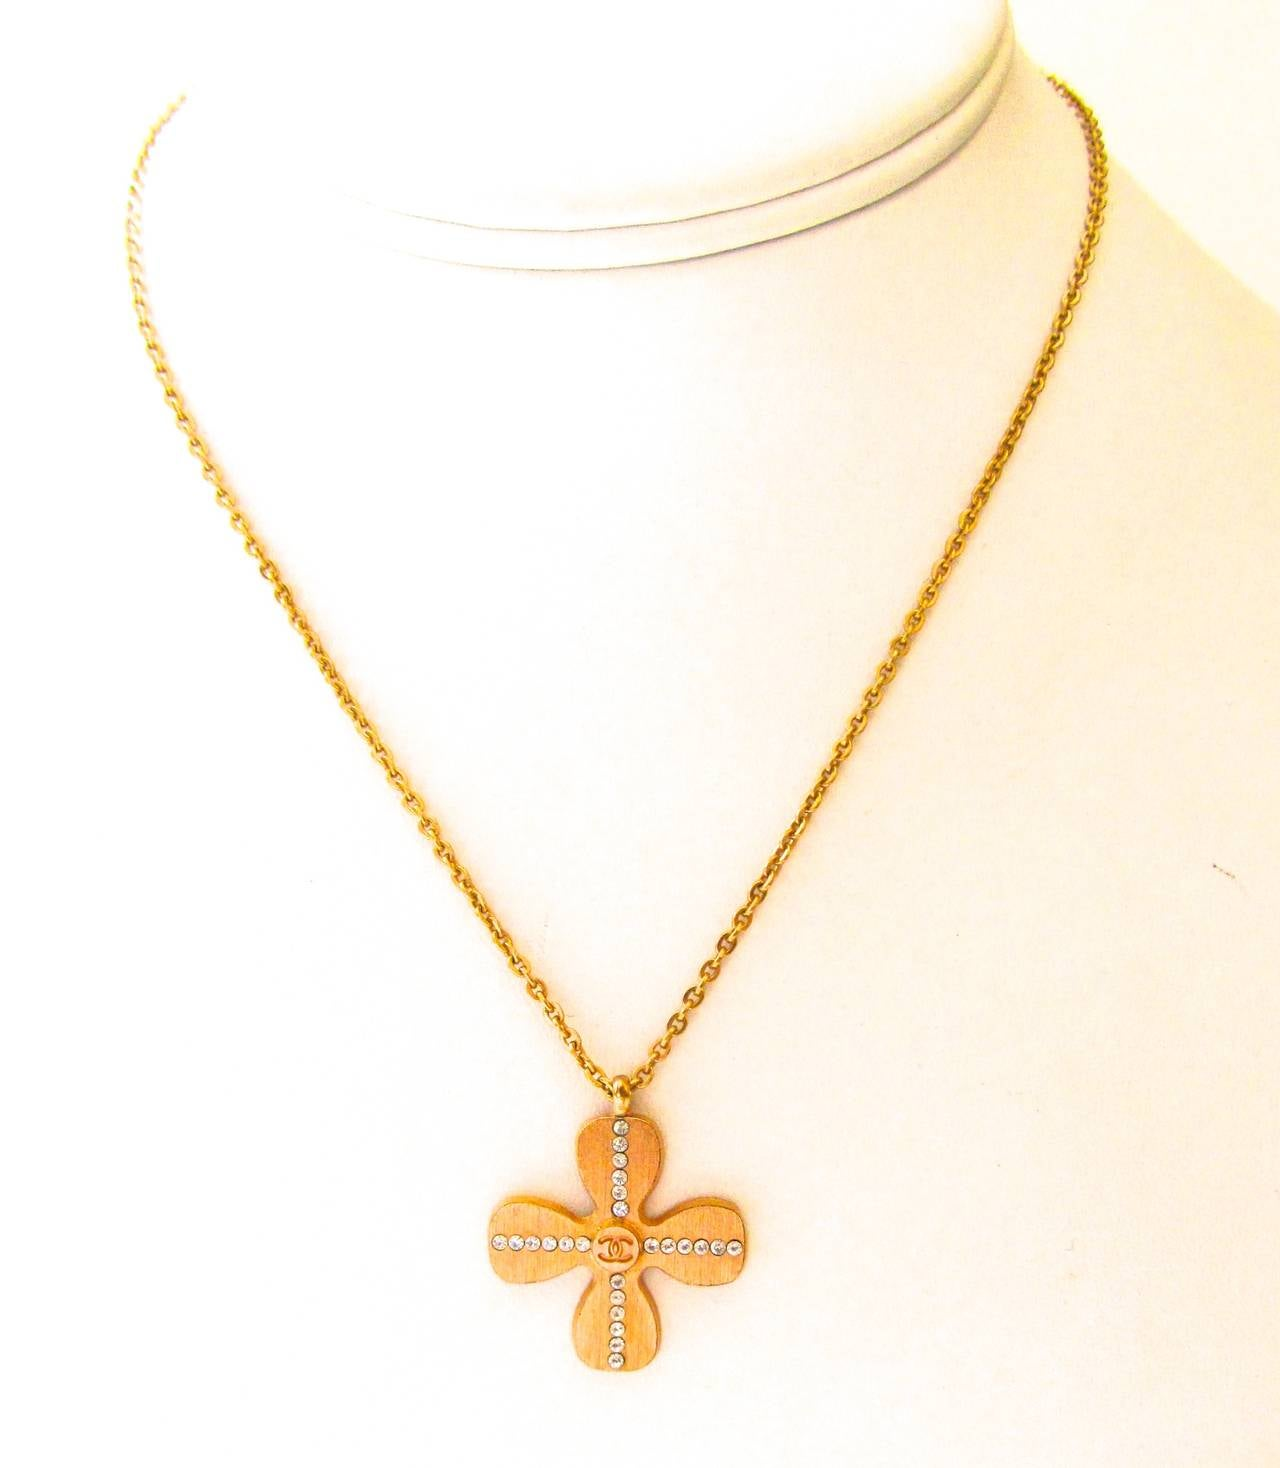 Chanel Gold Tone Necklace - Clover Shaped Charm with Crystal Cross Inlay In Excellent Condition For Sale In Boca Raton, FL